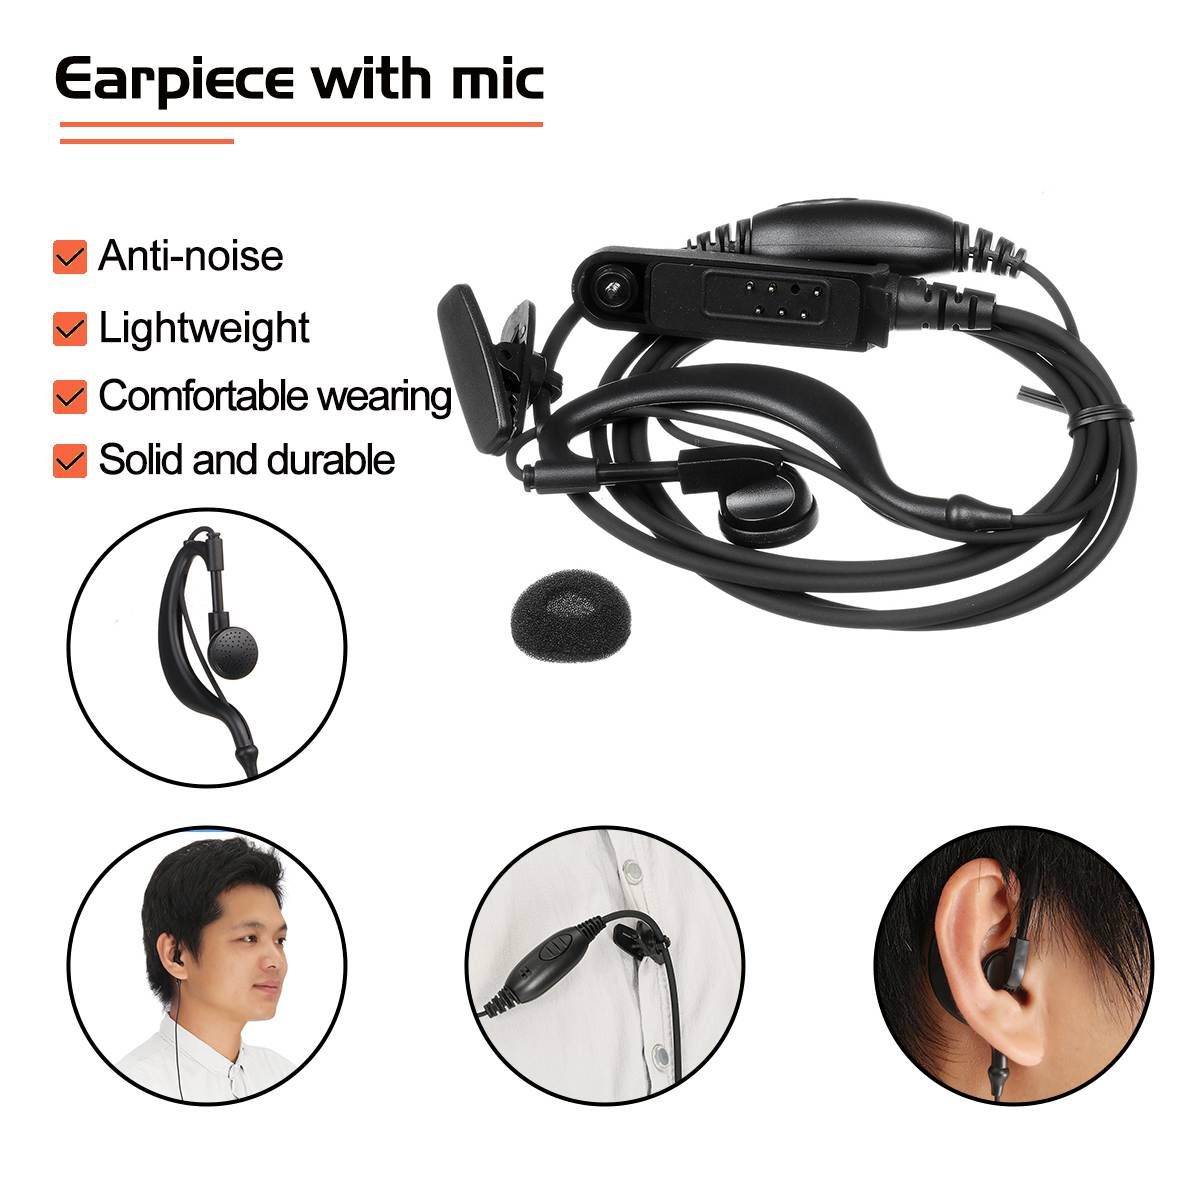 Baofeng UV9R-ERA Walkie Talkie Professional Parts Accessories Antenna Earpiece Screwdriver Car Charger Handstrap 4800Amh